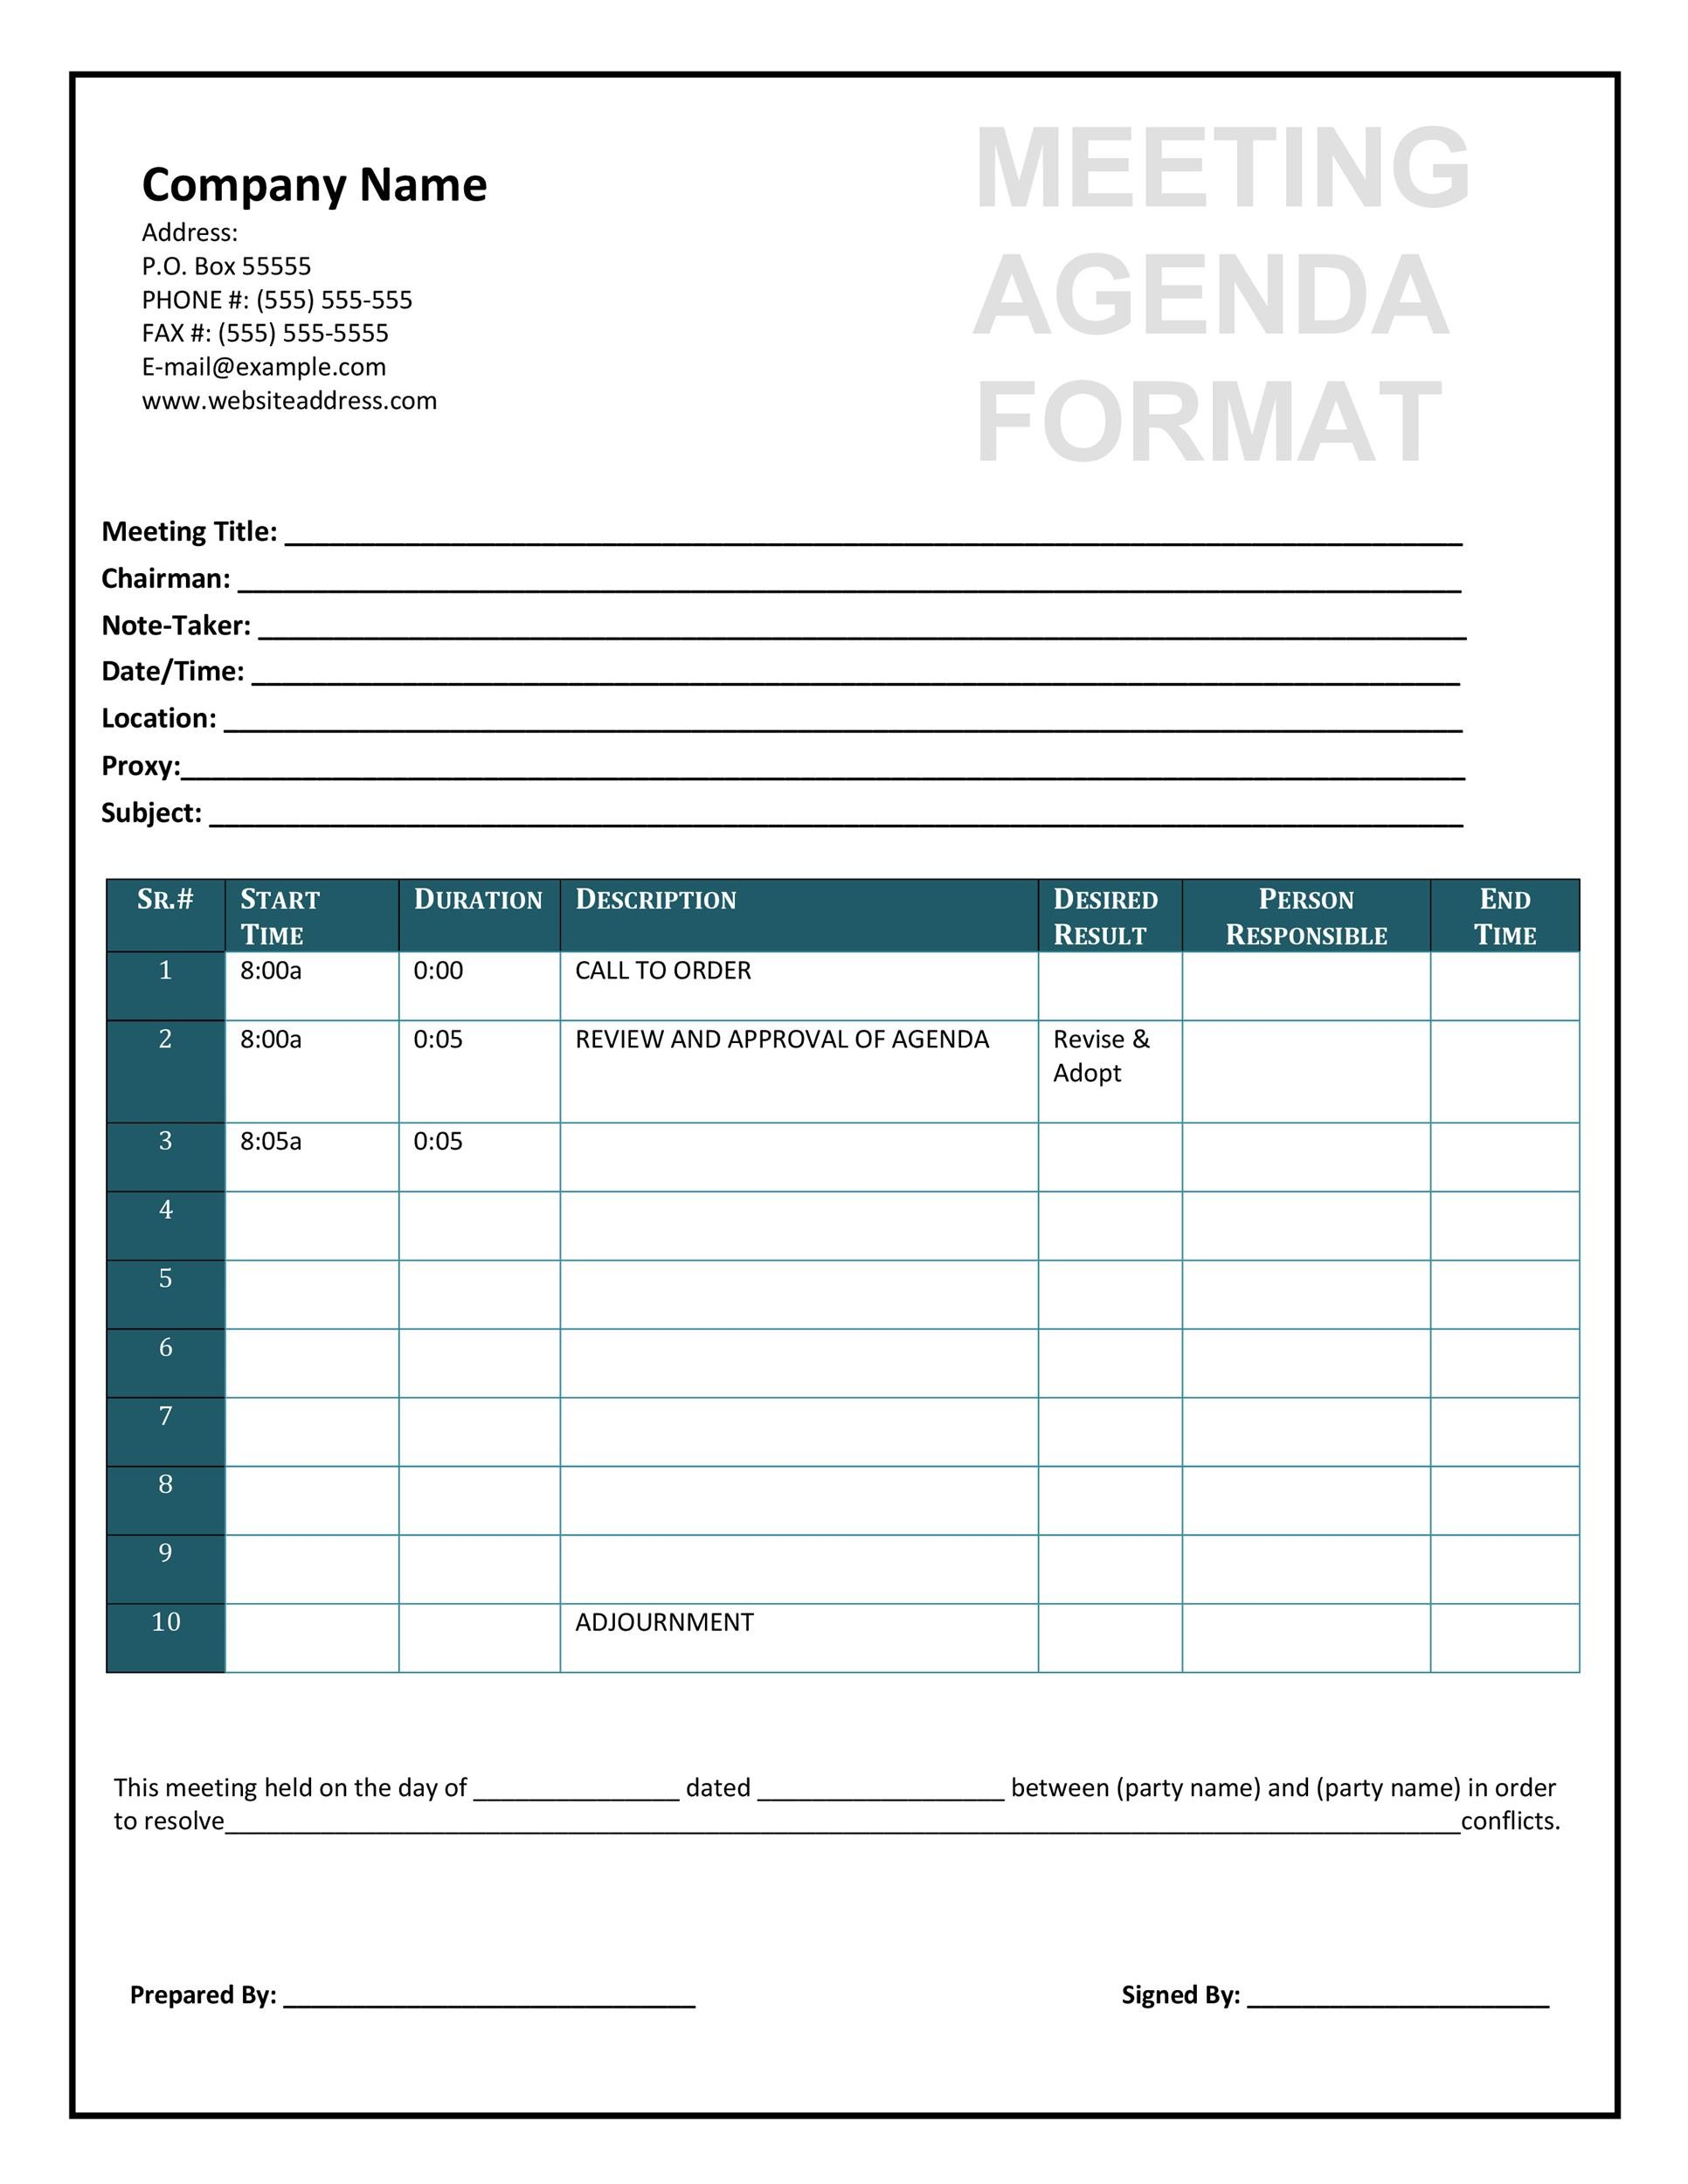 Free Meeting Agenda Template 09